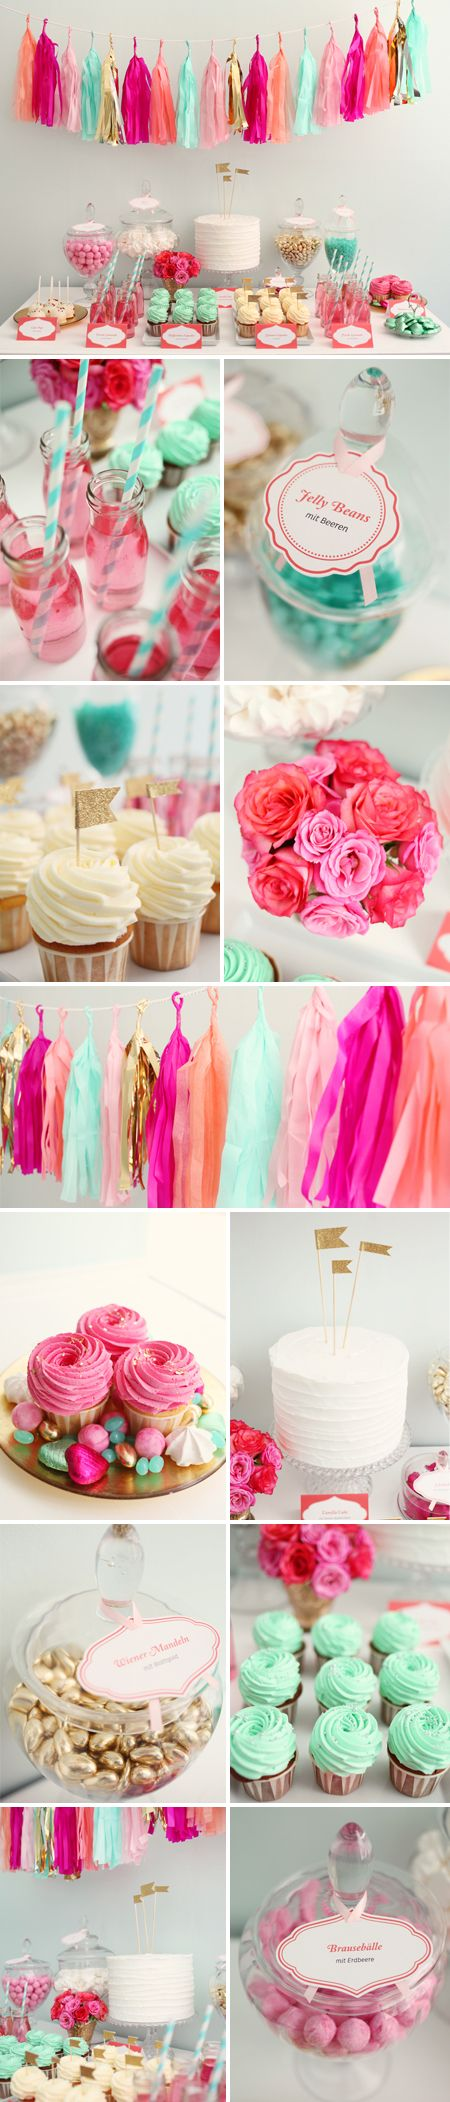 Super pretty for party!